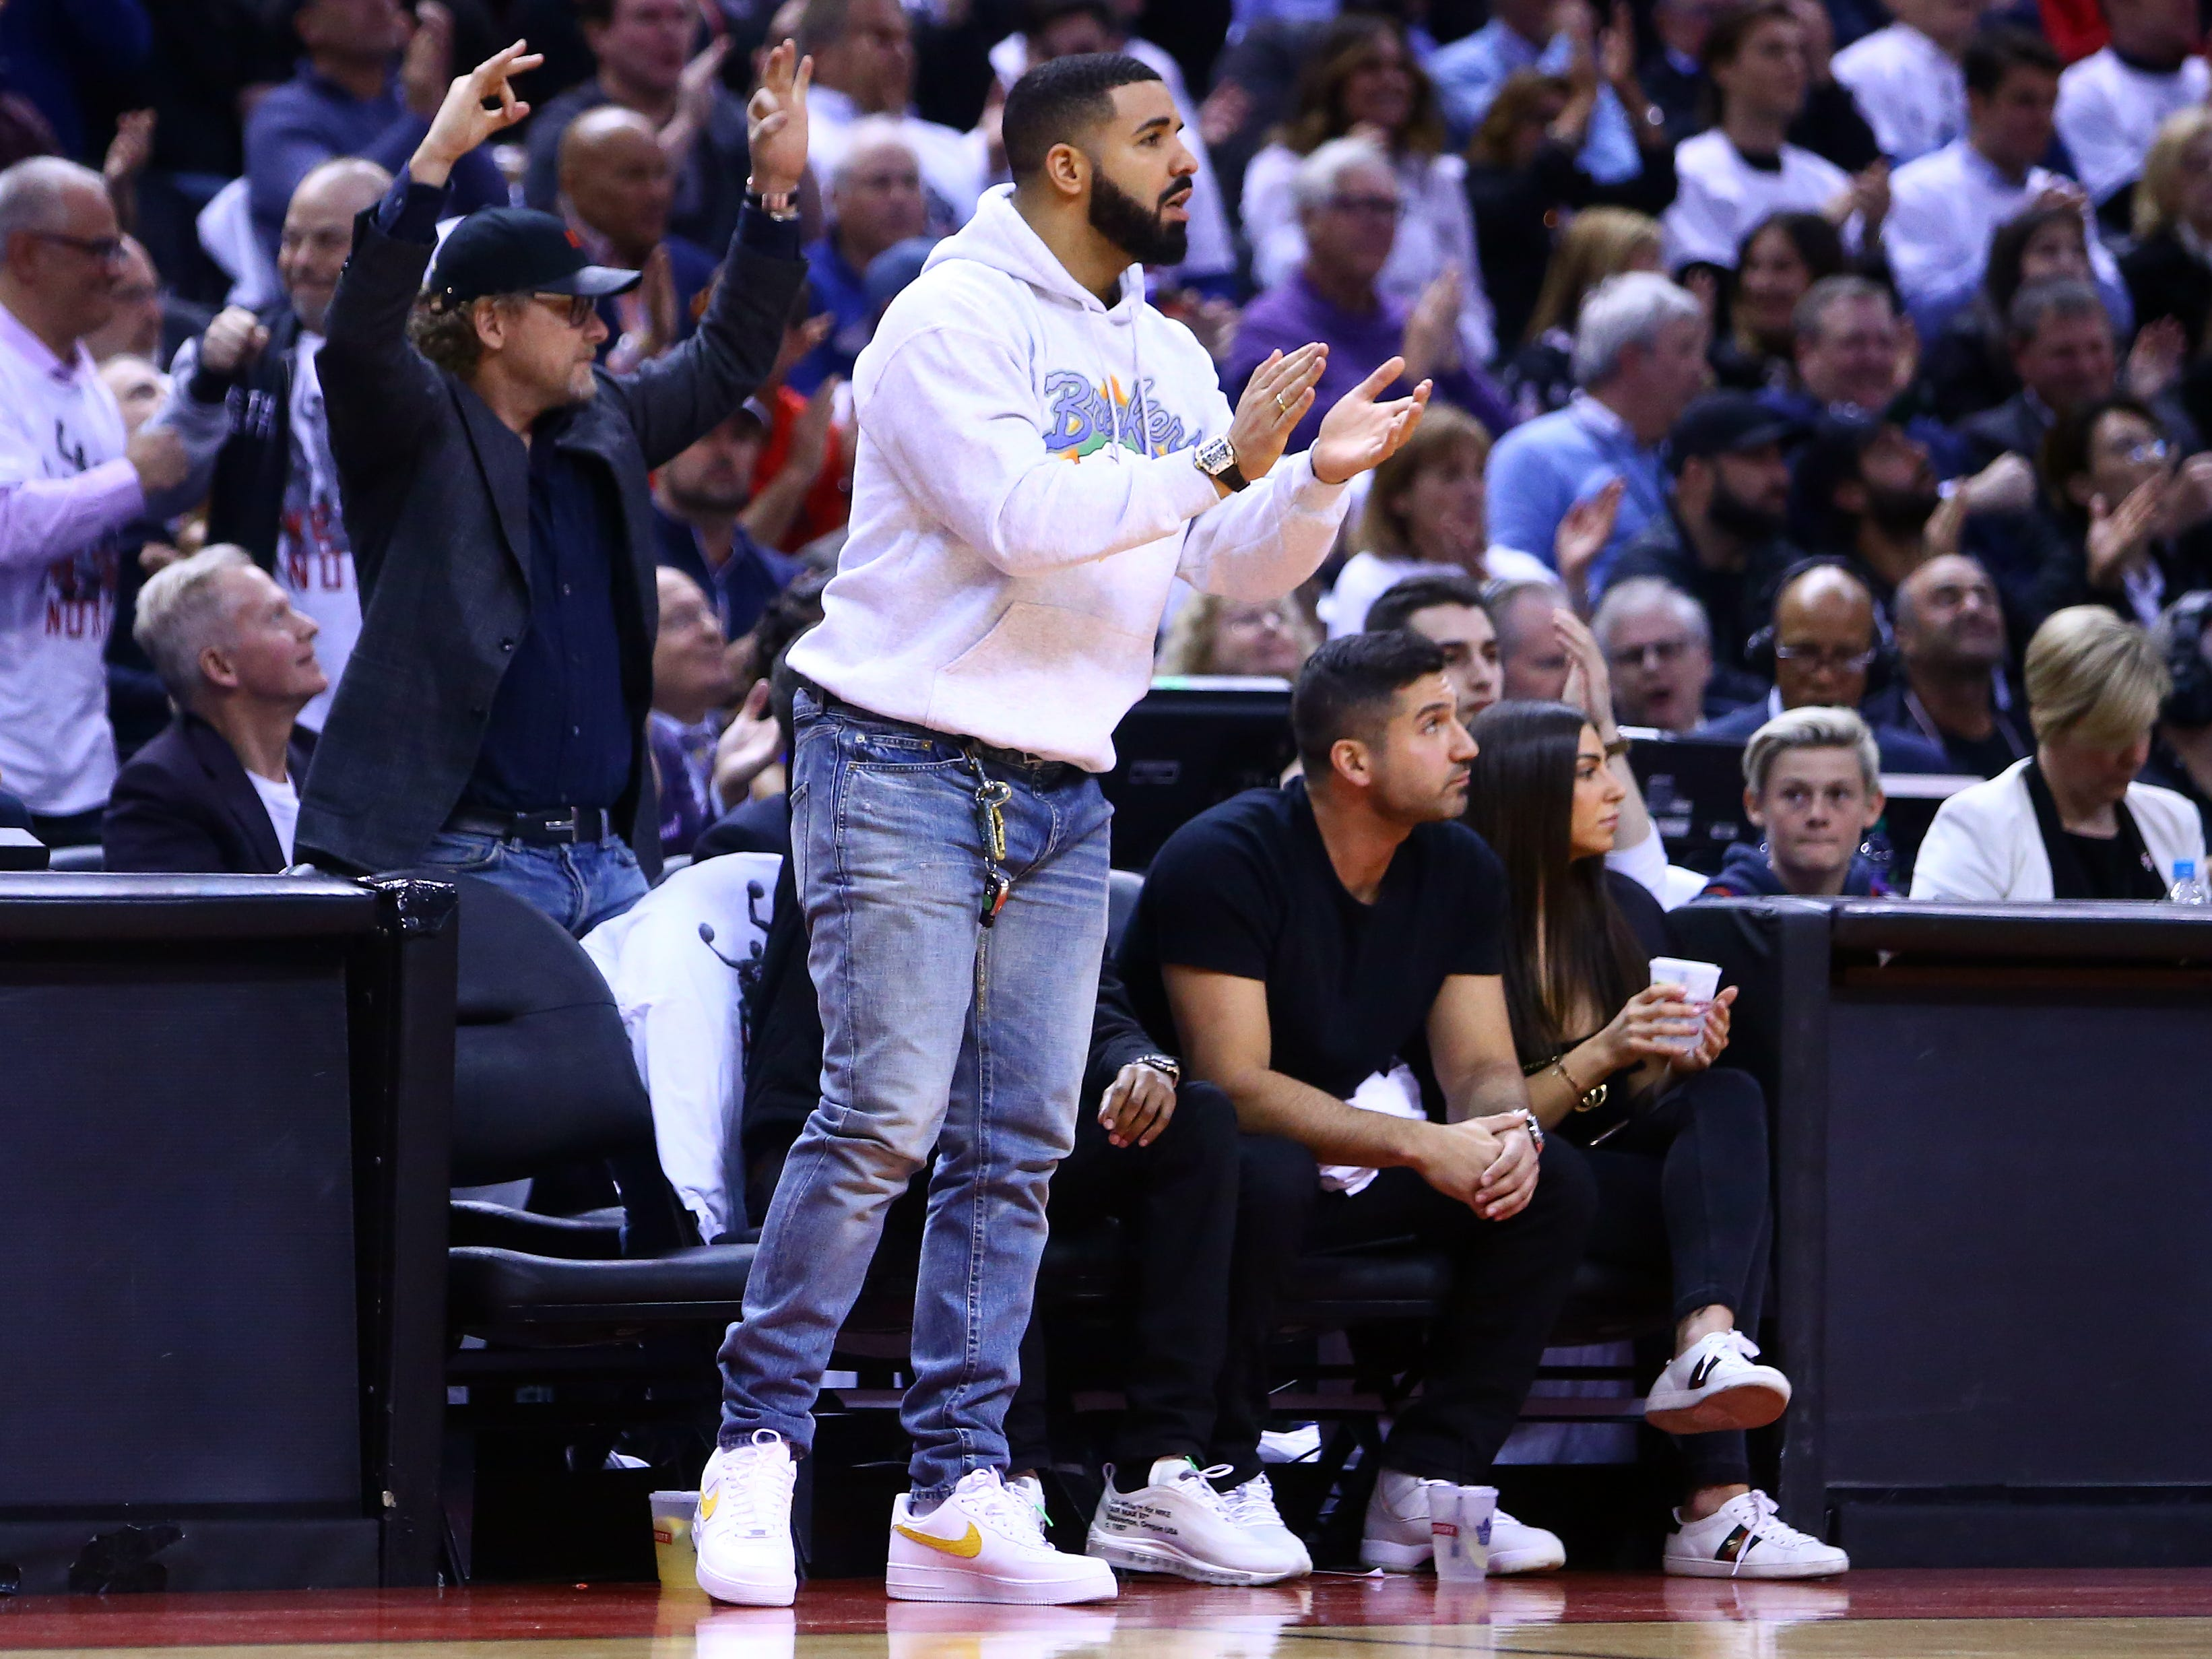 May 7: Singer Drake cheers for his Raptors during Game 5 in Toronto. The Raptors routed the 76ers 125-89.